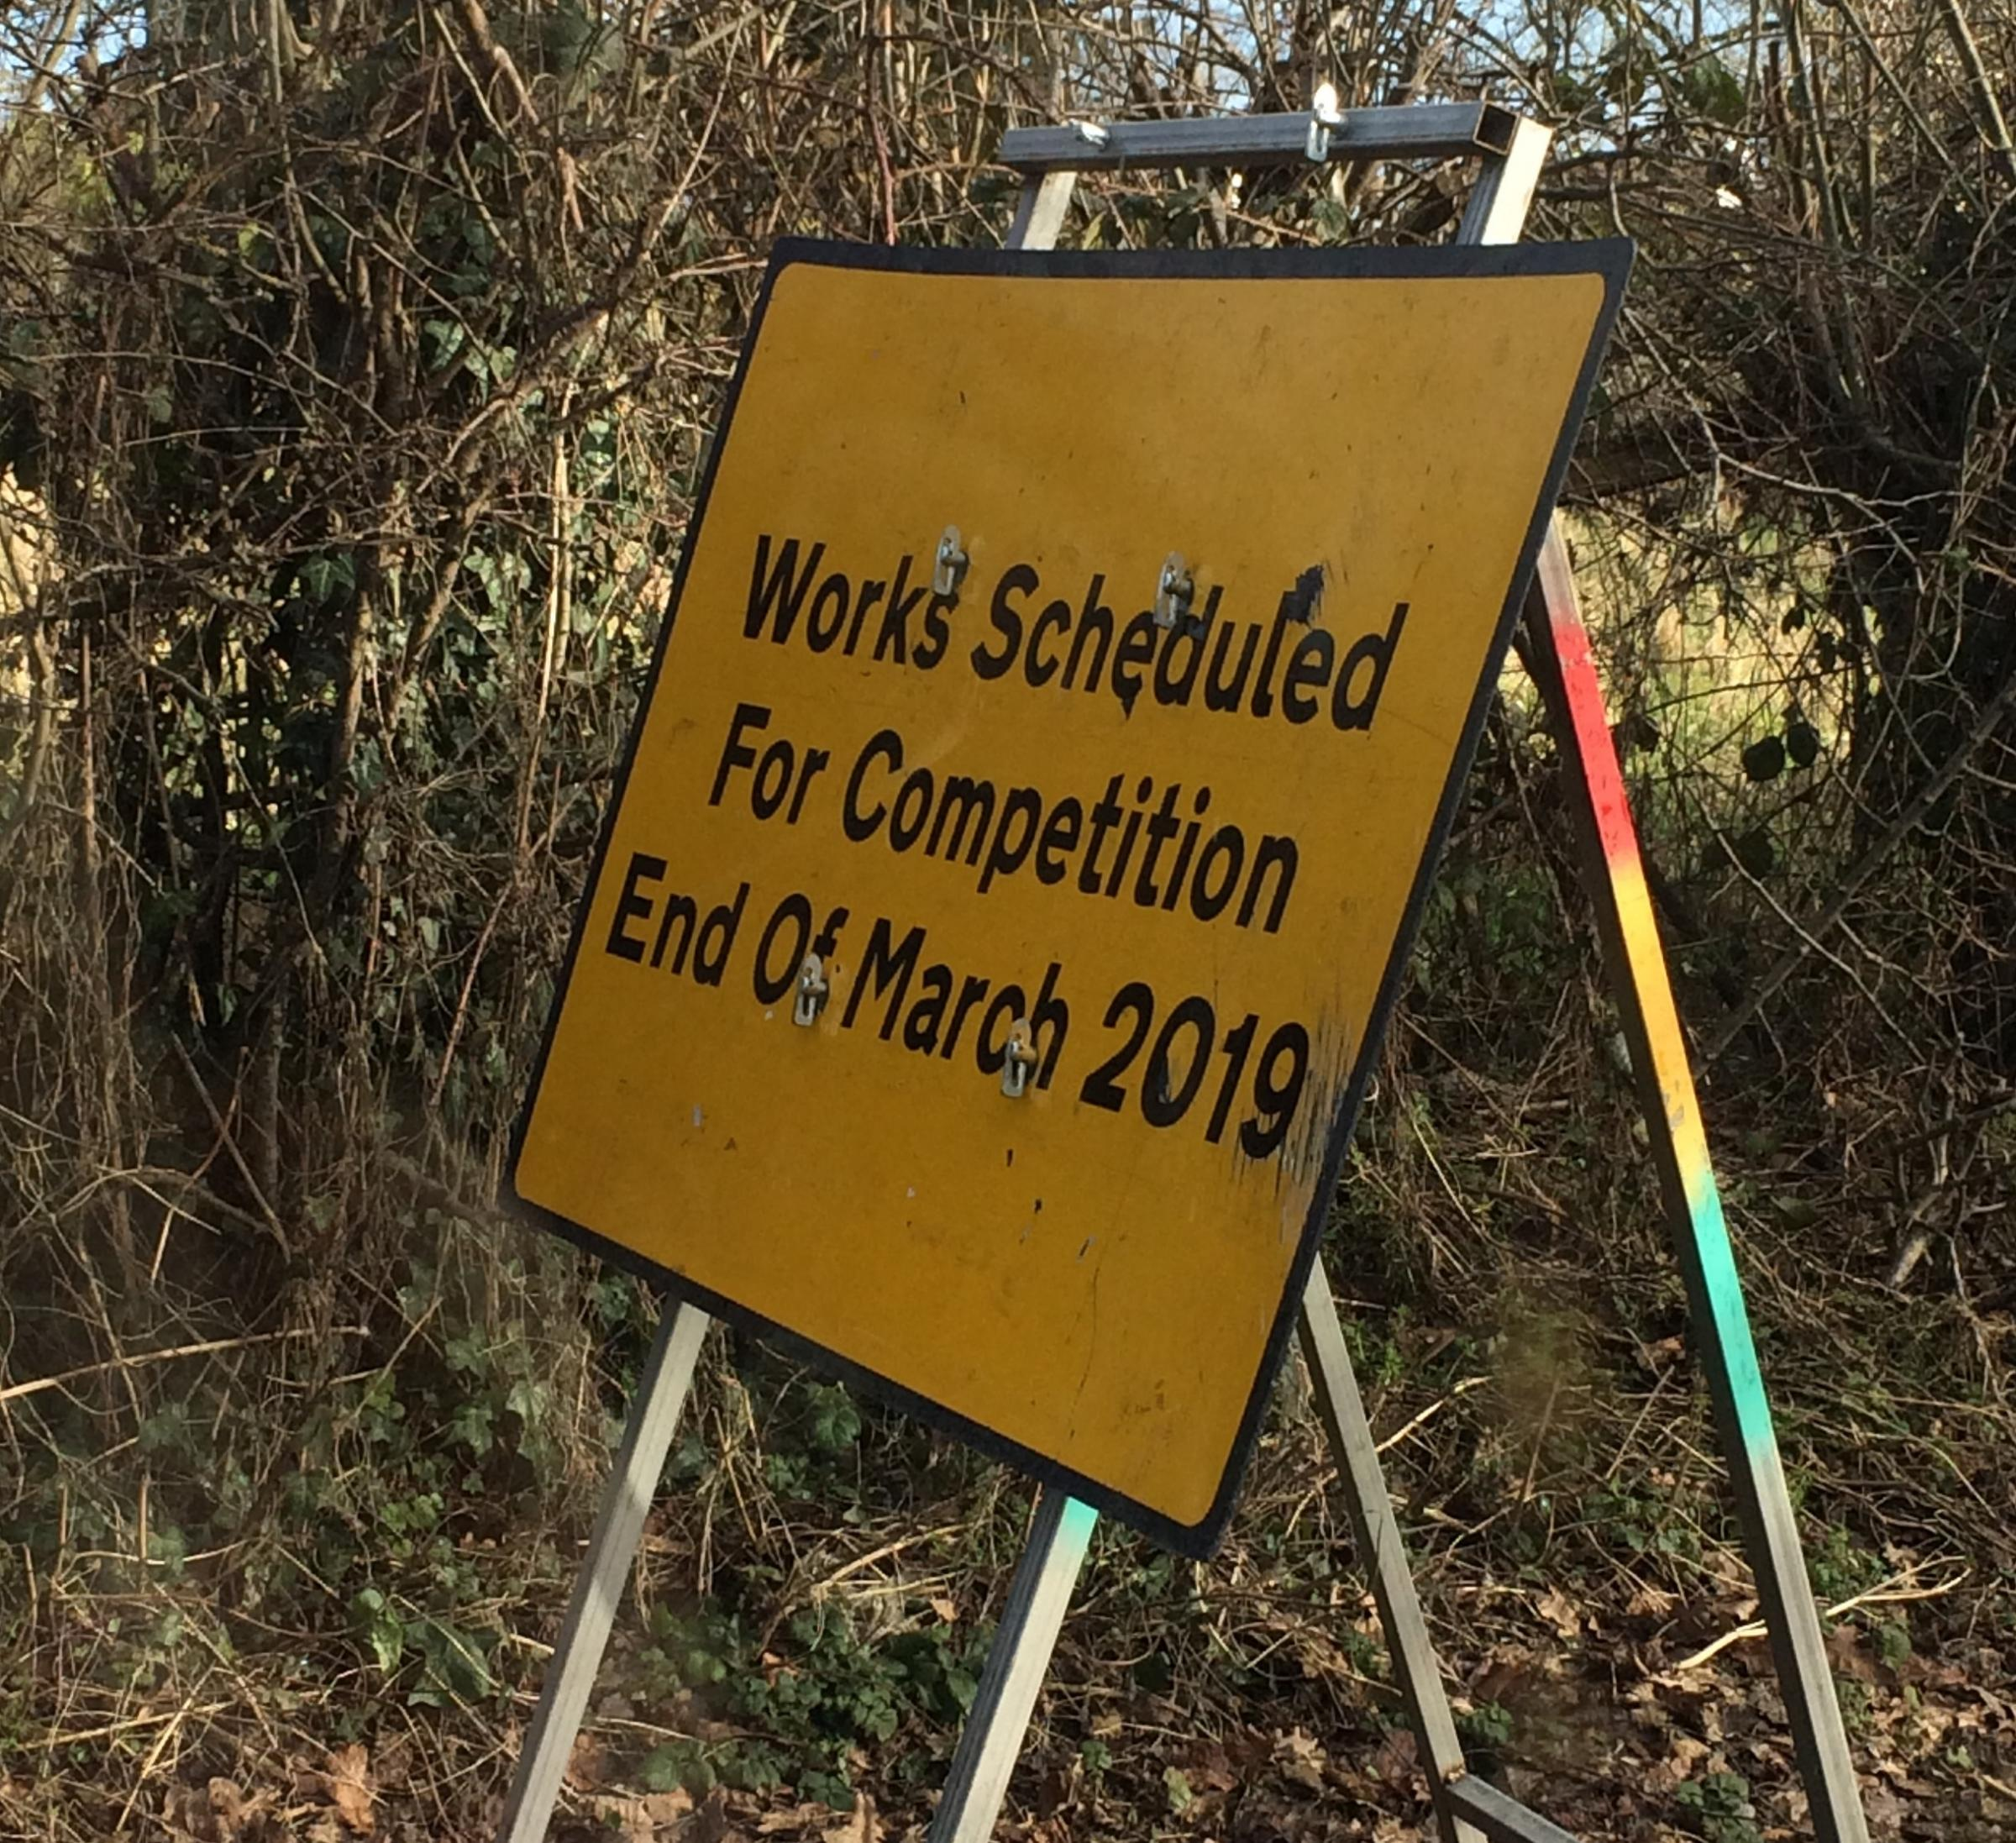 The road sign near Hereford. Photo: Howard Goold.